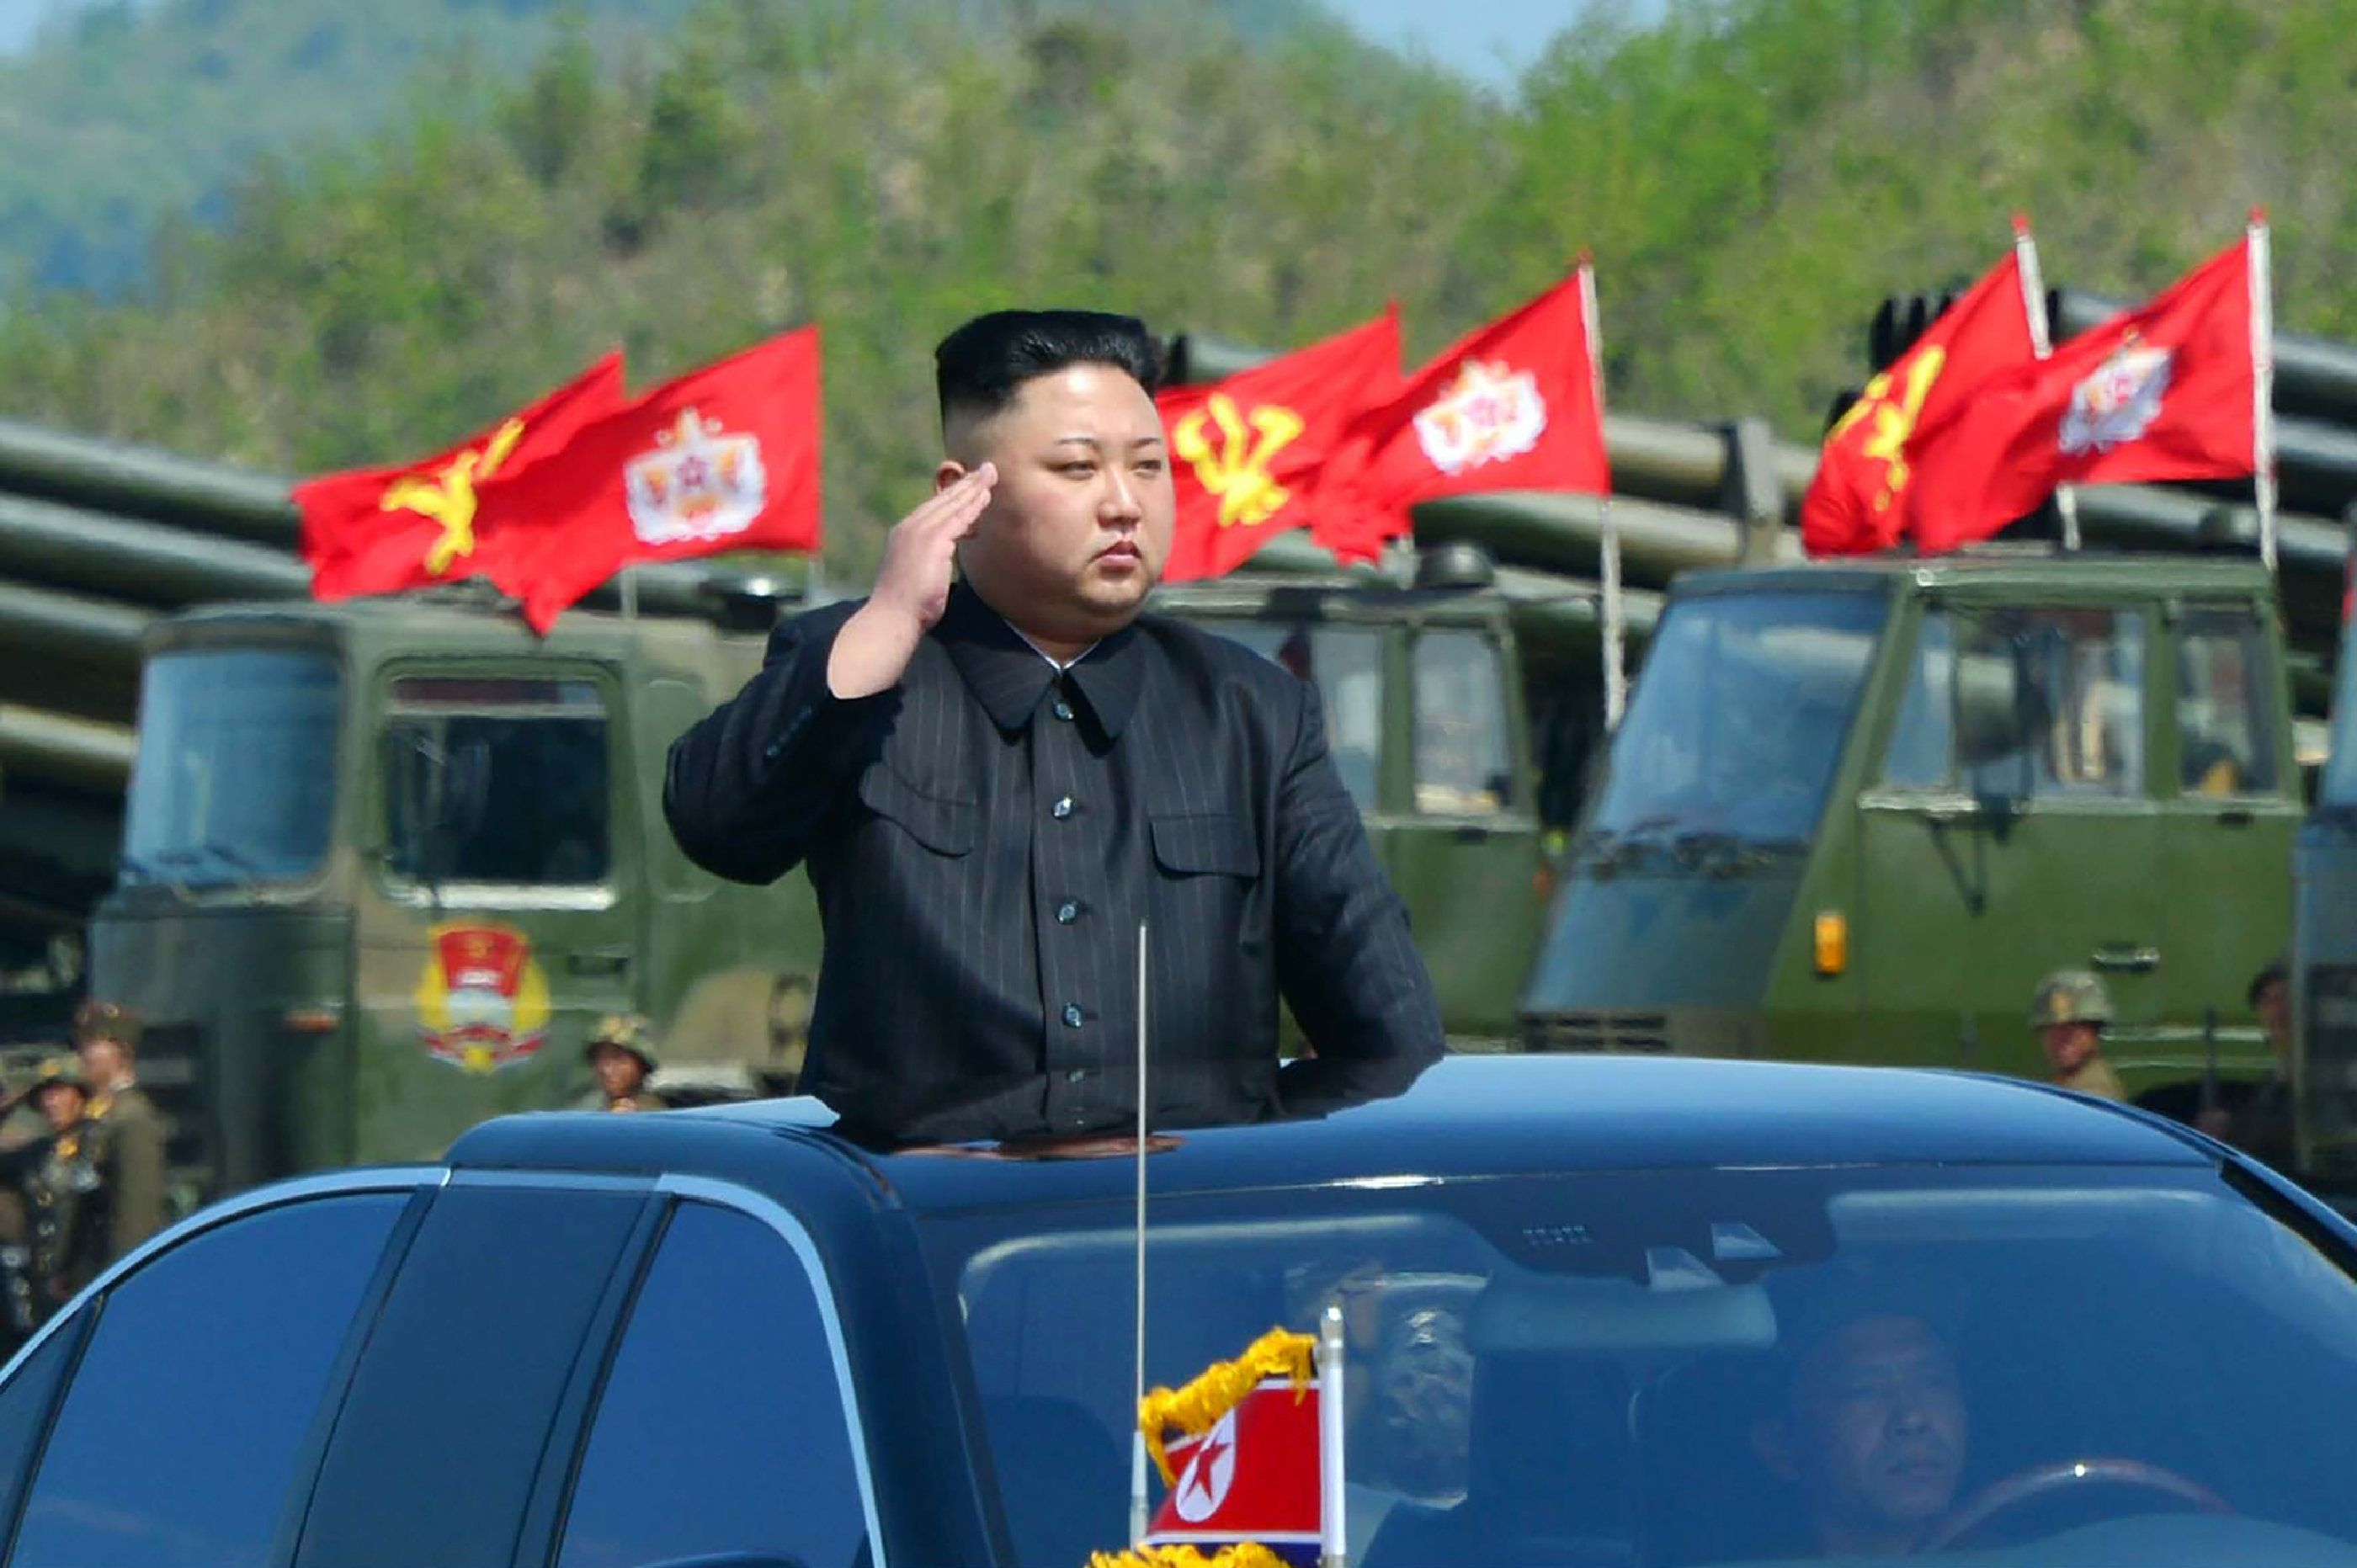 This undated picture released by North Korea's official Korean Central News Agency (KCNA) on April 26, 2017 shows North Korean leader Kim Jong-Un (C) attending the combined fire demonstration of the services of the Korean People's Army in celebration of its 85th founding anniversary at the airport of eastern front. / AFP PHOTO / KCNA VIA KNS / STR / South Korea OUT / REPUBLIC OF KOREA OUT   ---EDITORS NOTE--- RESTRICTED TO EDITORIAL USE - MANDATORY CREDIT 'AFP PHOTO/KCNA VIA KNS' - NO MARKETING NO ADVERTISING CAMPAIGNS - DISTRIBUTED AS A SERVICE TO CLIENTS THIS PICTURE WAS MADE AVAILABLE BY A THIRD PARTY. AFP CAN NOT INDEPENDENTLY VERIFY THE AUTHENTICITY, LOCATION, DATE AND CONTENT OF THIS IMAGE. THIS PHOTO IS DISTRIBUTED EXACTLY AS RECEIVED BY AFP.  /         (Photo credit should read STR/AFP/Getty Images)